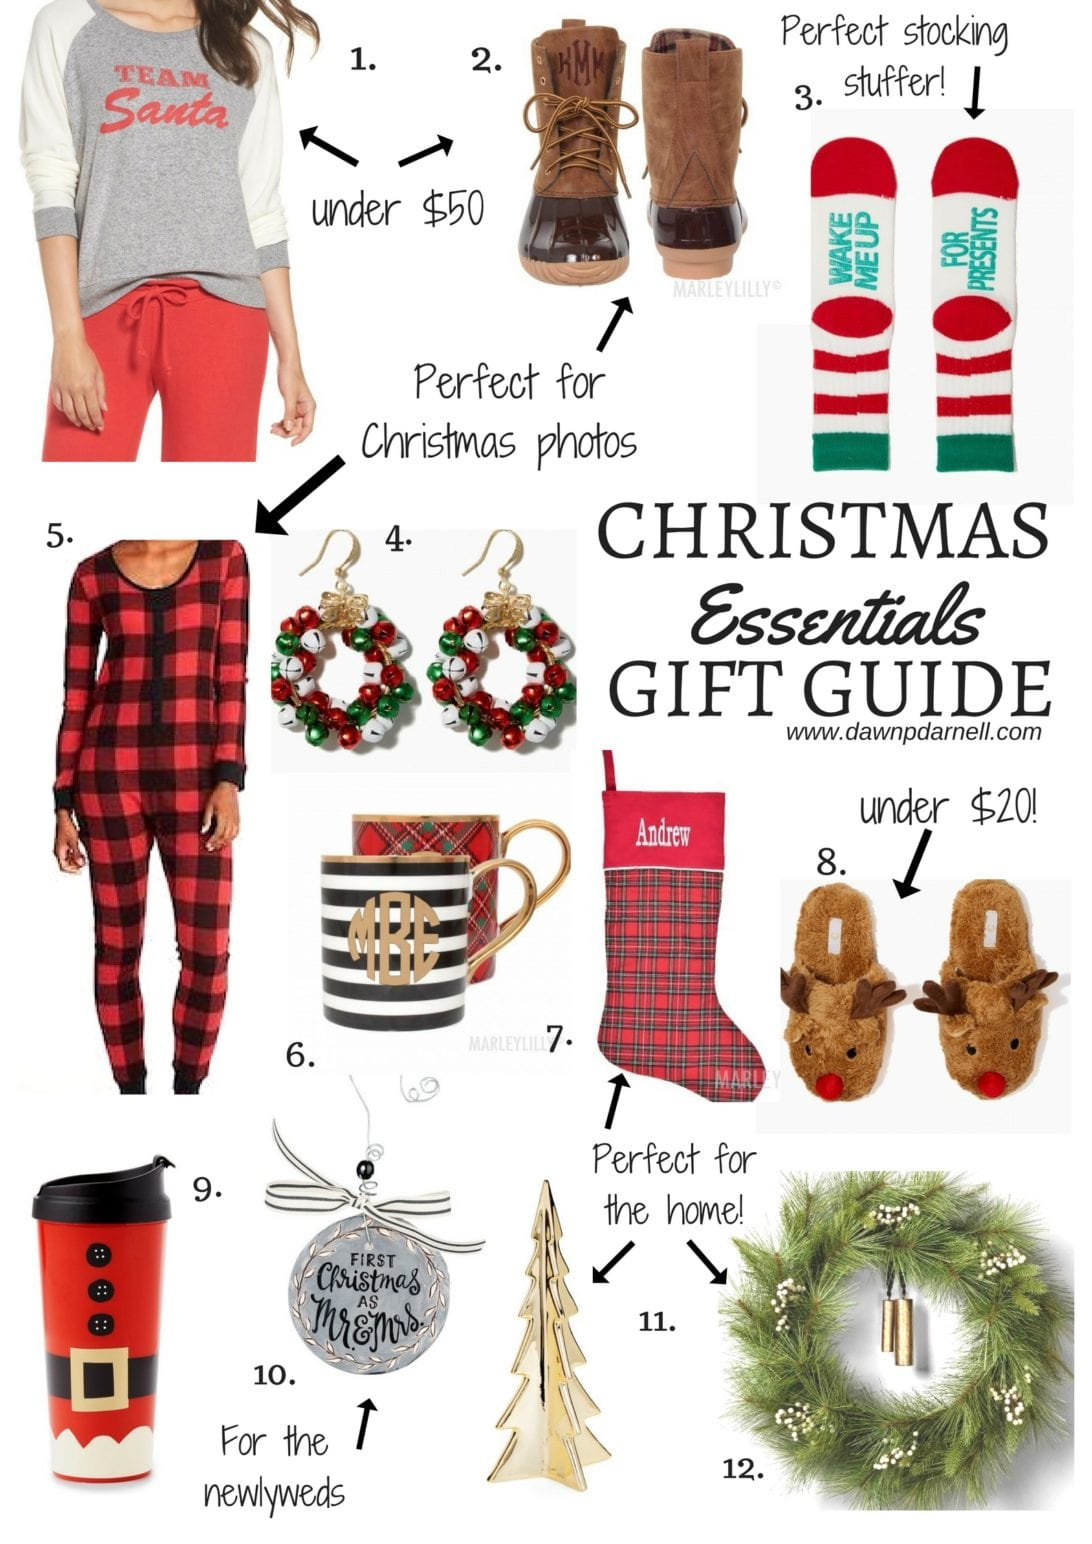 1. Team SantaRaglan Sweatshirt  2.Monogrammed Duck Boots  3.Wake Me Up For Presents Socks  4.Jingle Bell Wreath Earrings  5.Thermal Onesie for Women  6.Personalized Coffee Mug  7.Monogrammed Stocking  8.Reindeer Slip-on Slippers  9.holiday village thermal mug  10.Our First Christmas Ceramic Ornament  11. GoldPorcelain Tree  12. Pine Wreath from Heart & Hand Magnolia, christmas gift guide, christmas decor, family matching pjs, buffalo plaid pjs, buffalo plaid dress, buffalo plaid pj for toddlers, buffalo plaid dress, christmas outfit ,